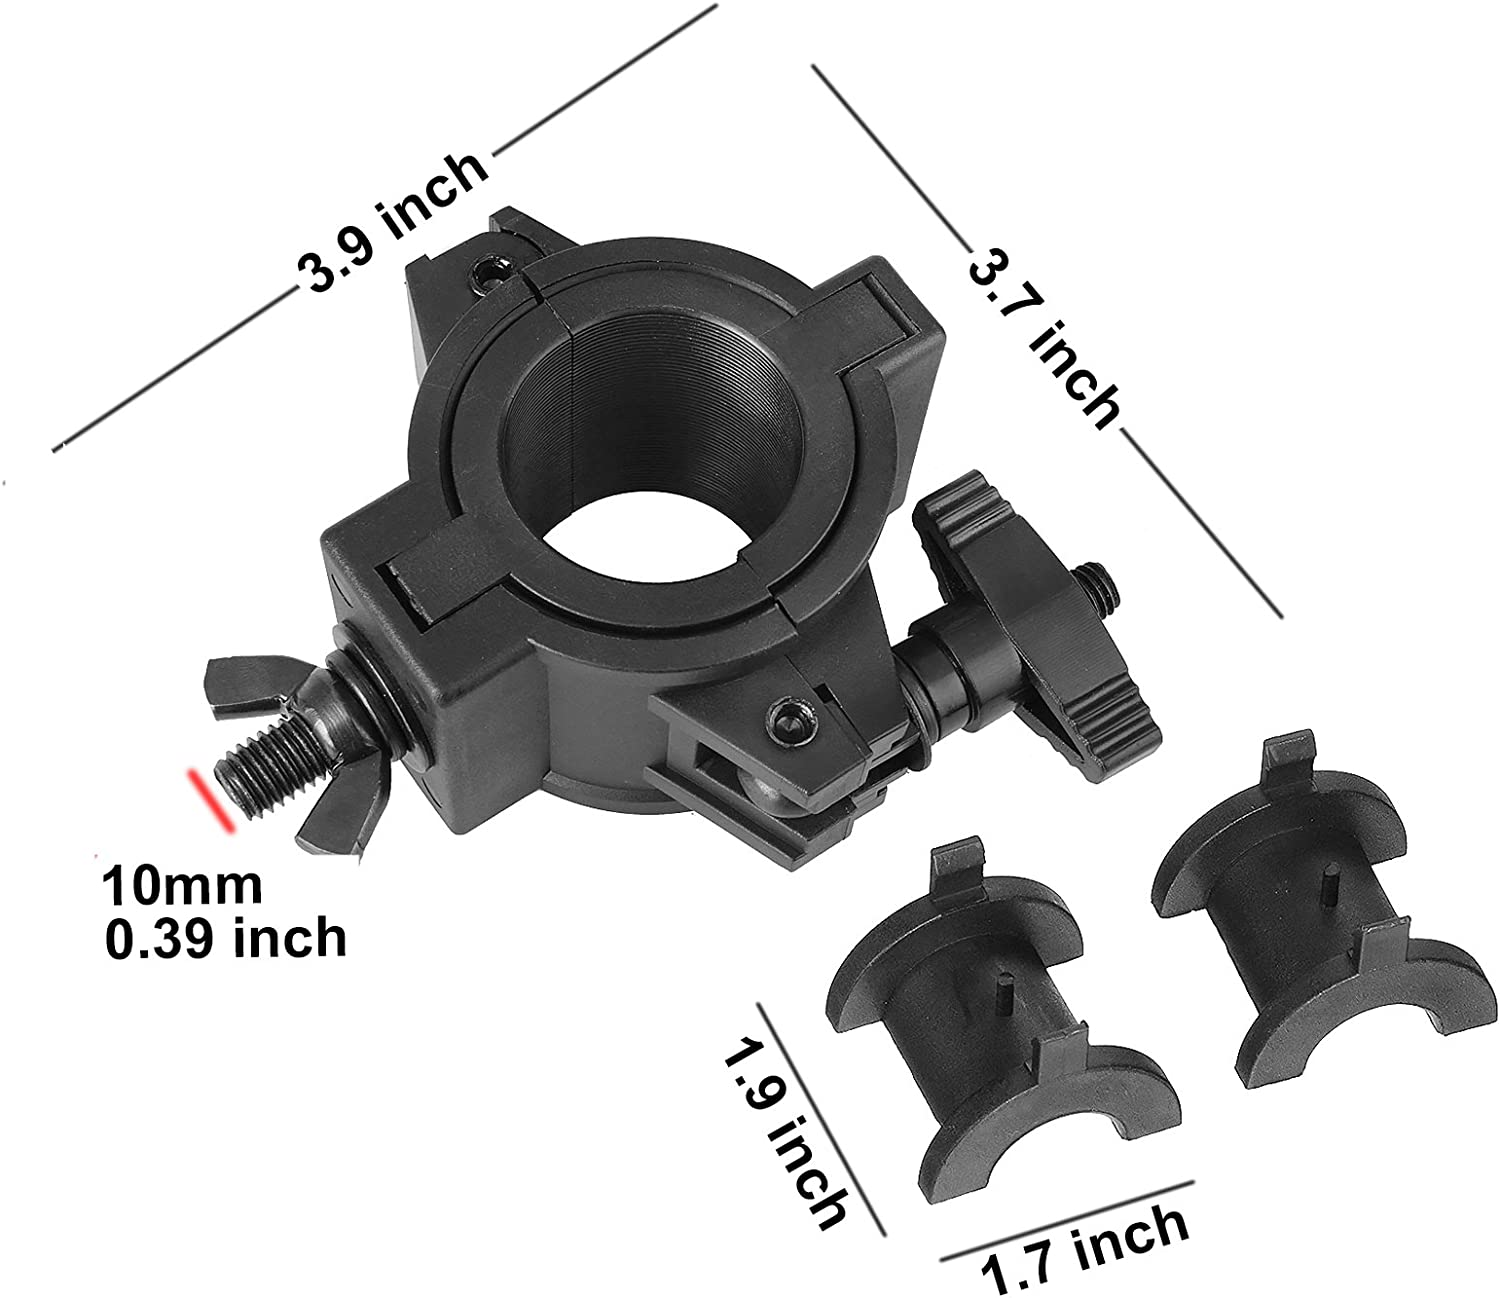 F24 F14 mountain ark 5 Pack 33lb Stage Light Clamps for DJ Lighting Products Par Light Plastic O Clamp Fit 3 Size Pipe Diameter: 25mm 48mm 36mm F34